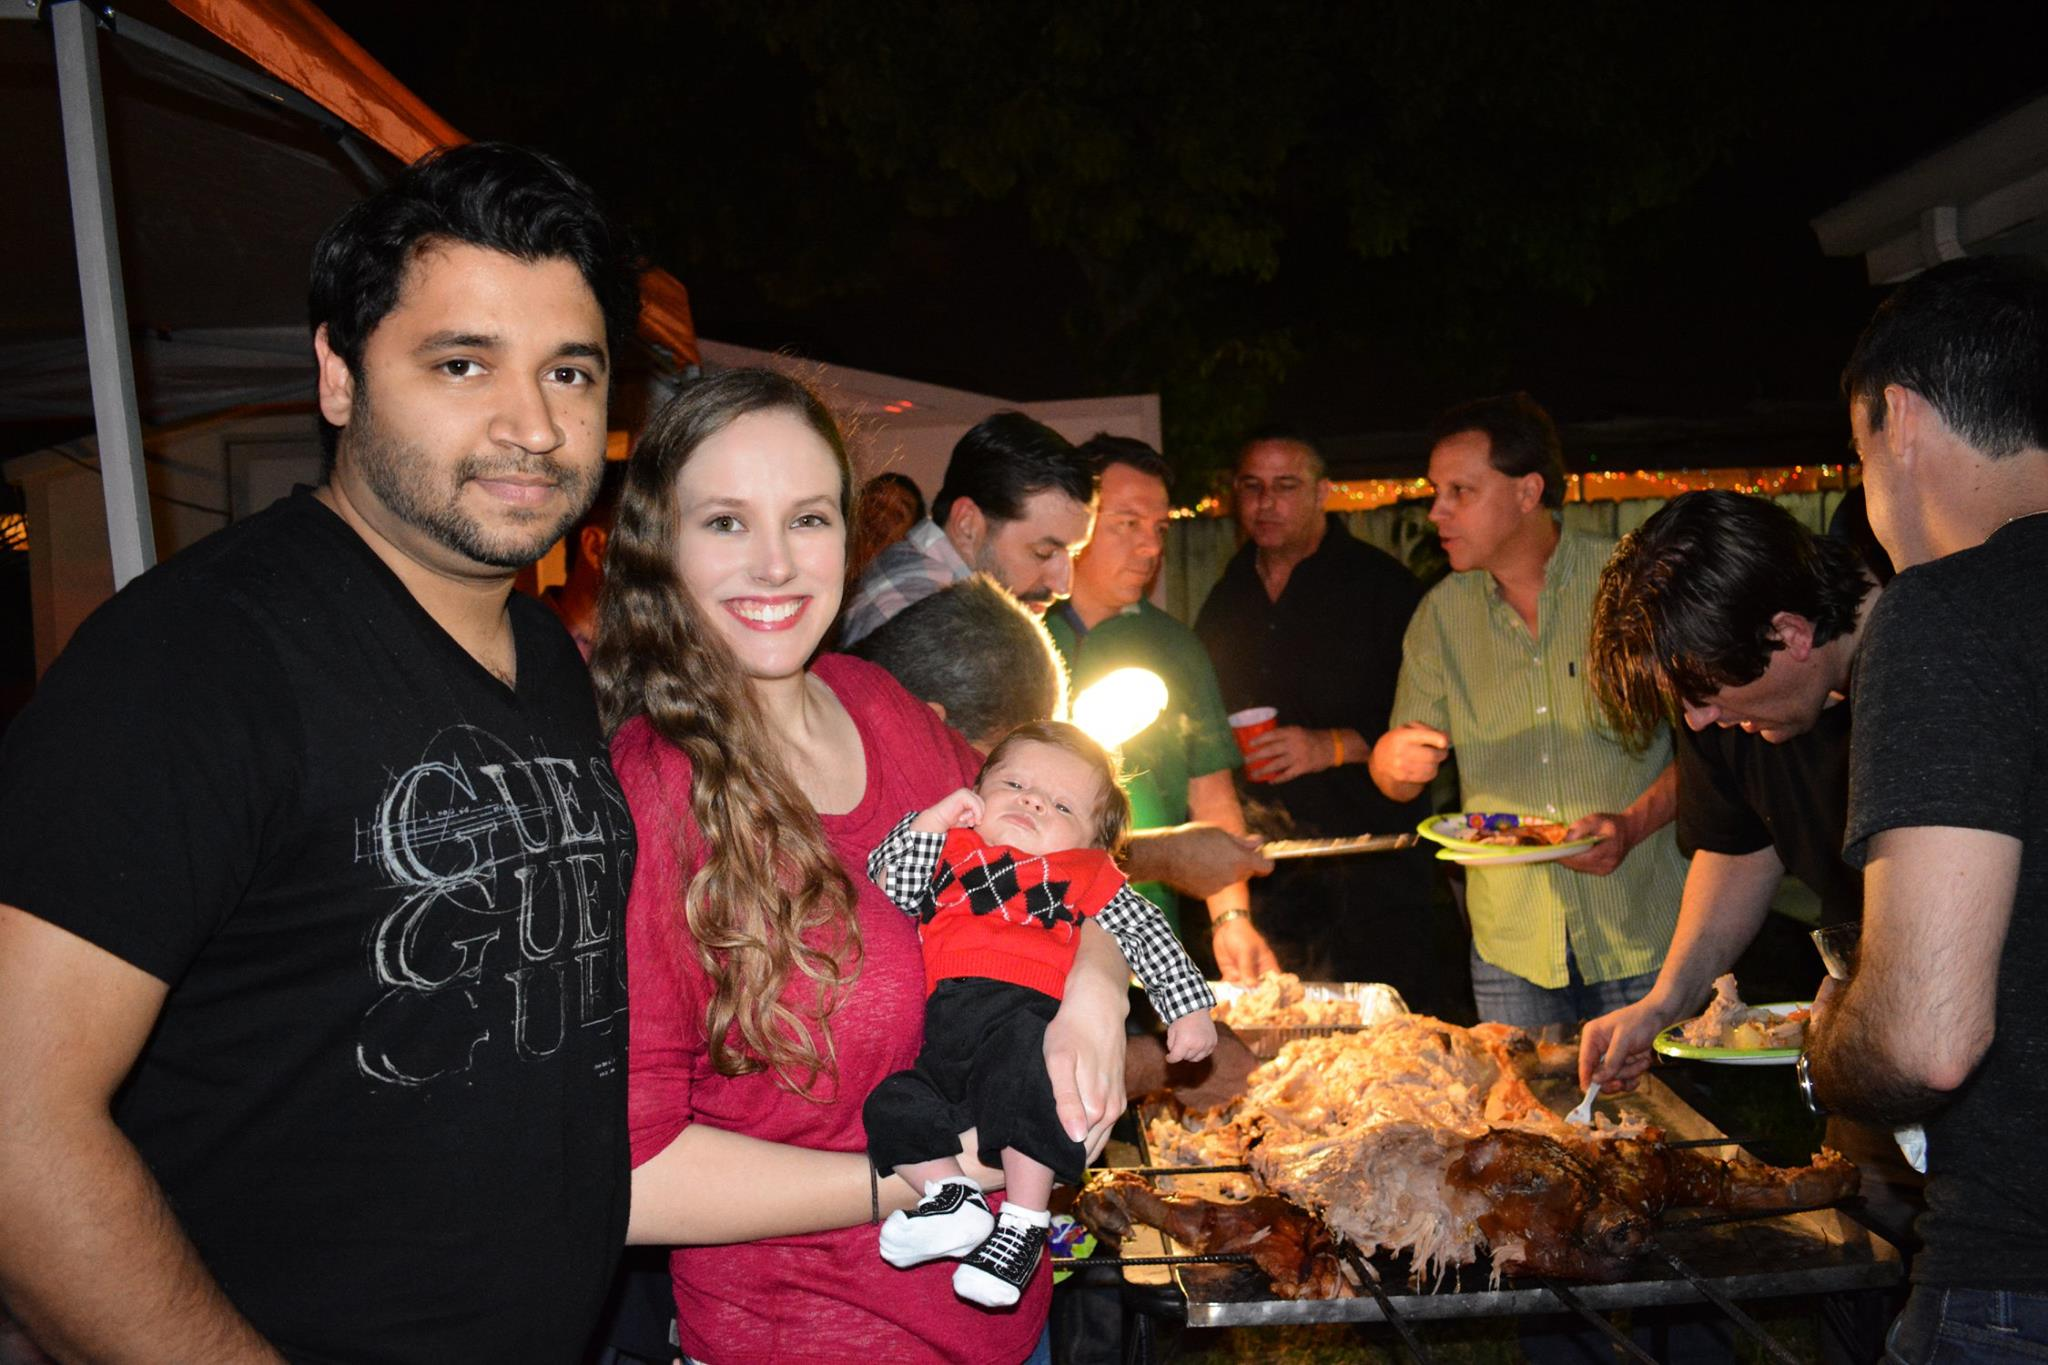 Noah at his first annual pig roast (almost 1 month old!), with Tio Ray carving el puerco in the background and Cousin Louie holding up the lamp.